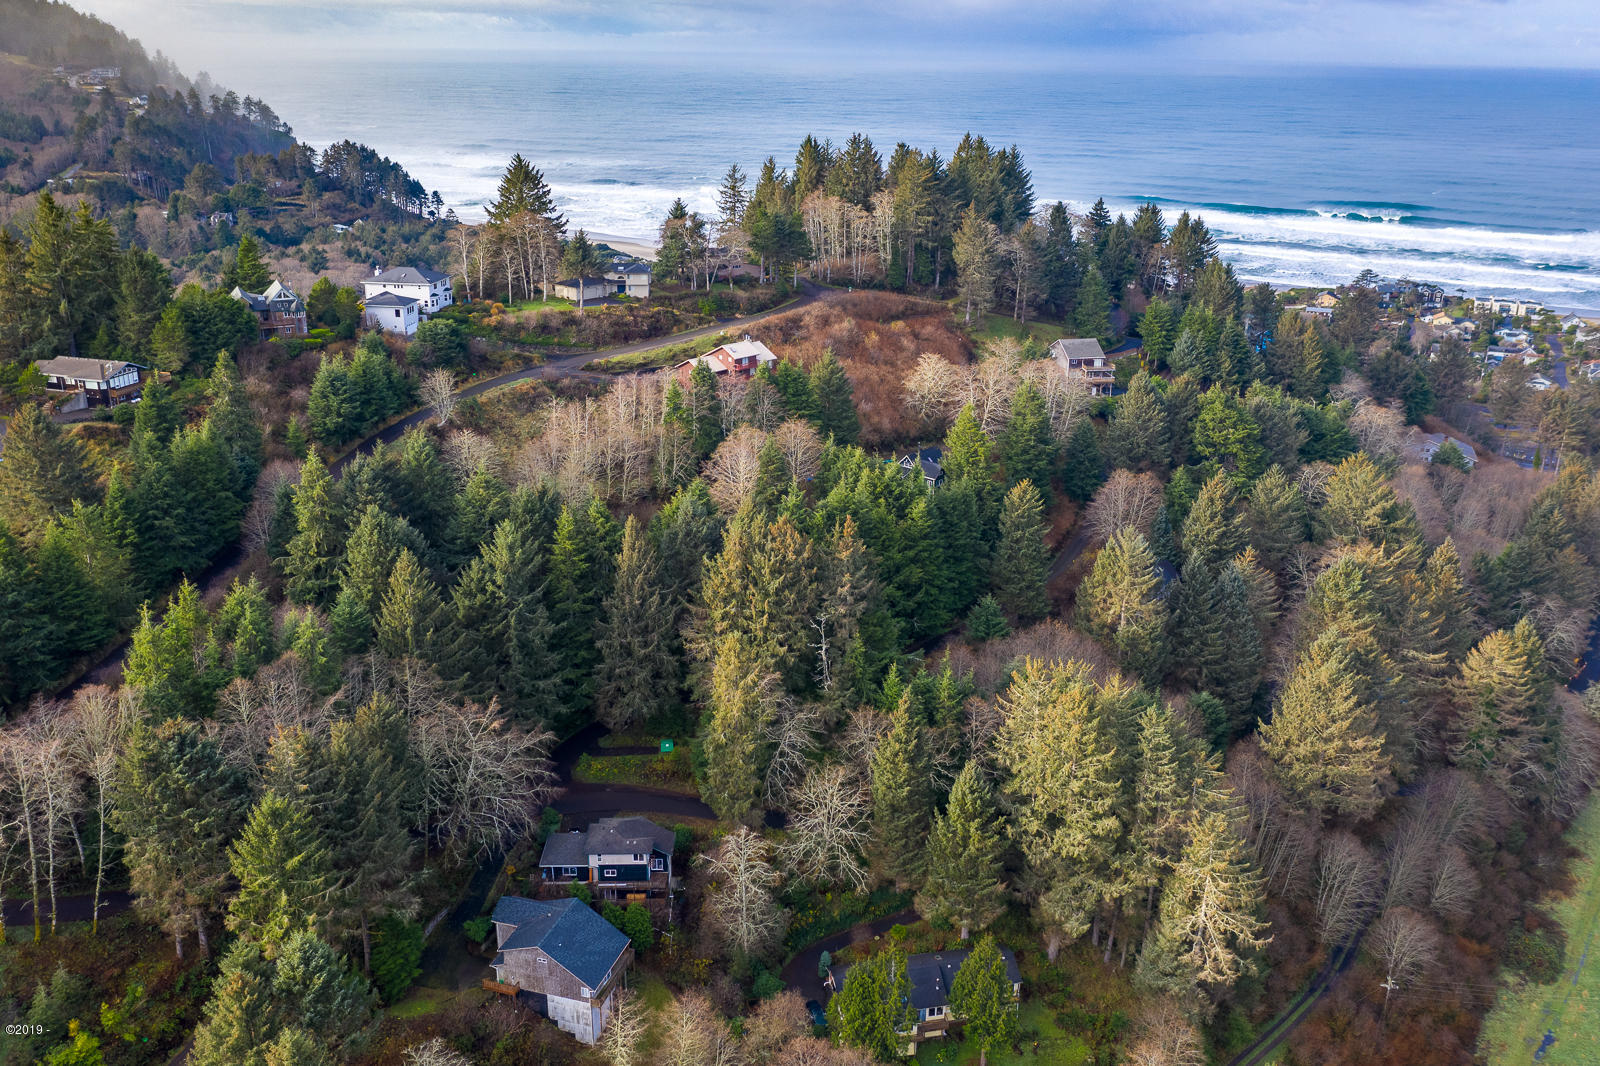 LOTS 4,5,6 Valley View Dr, Neskowin, OR 97149 - SummitRdLot-01